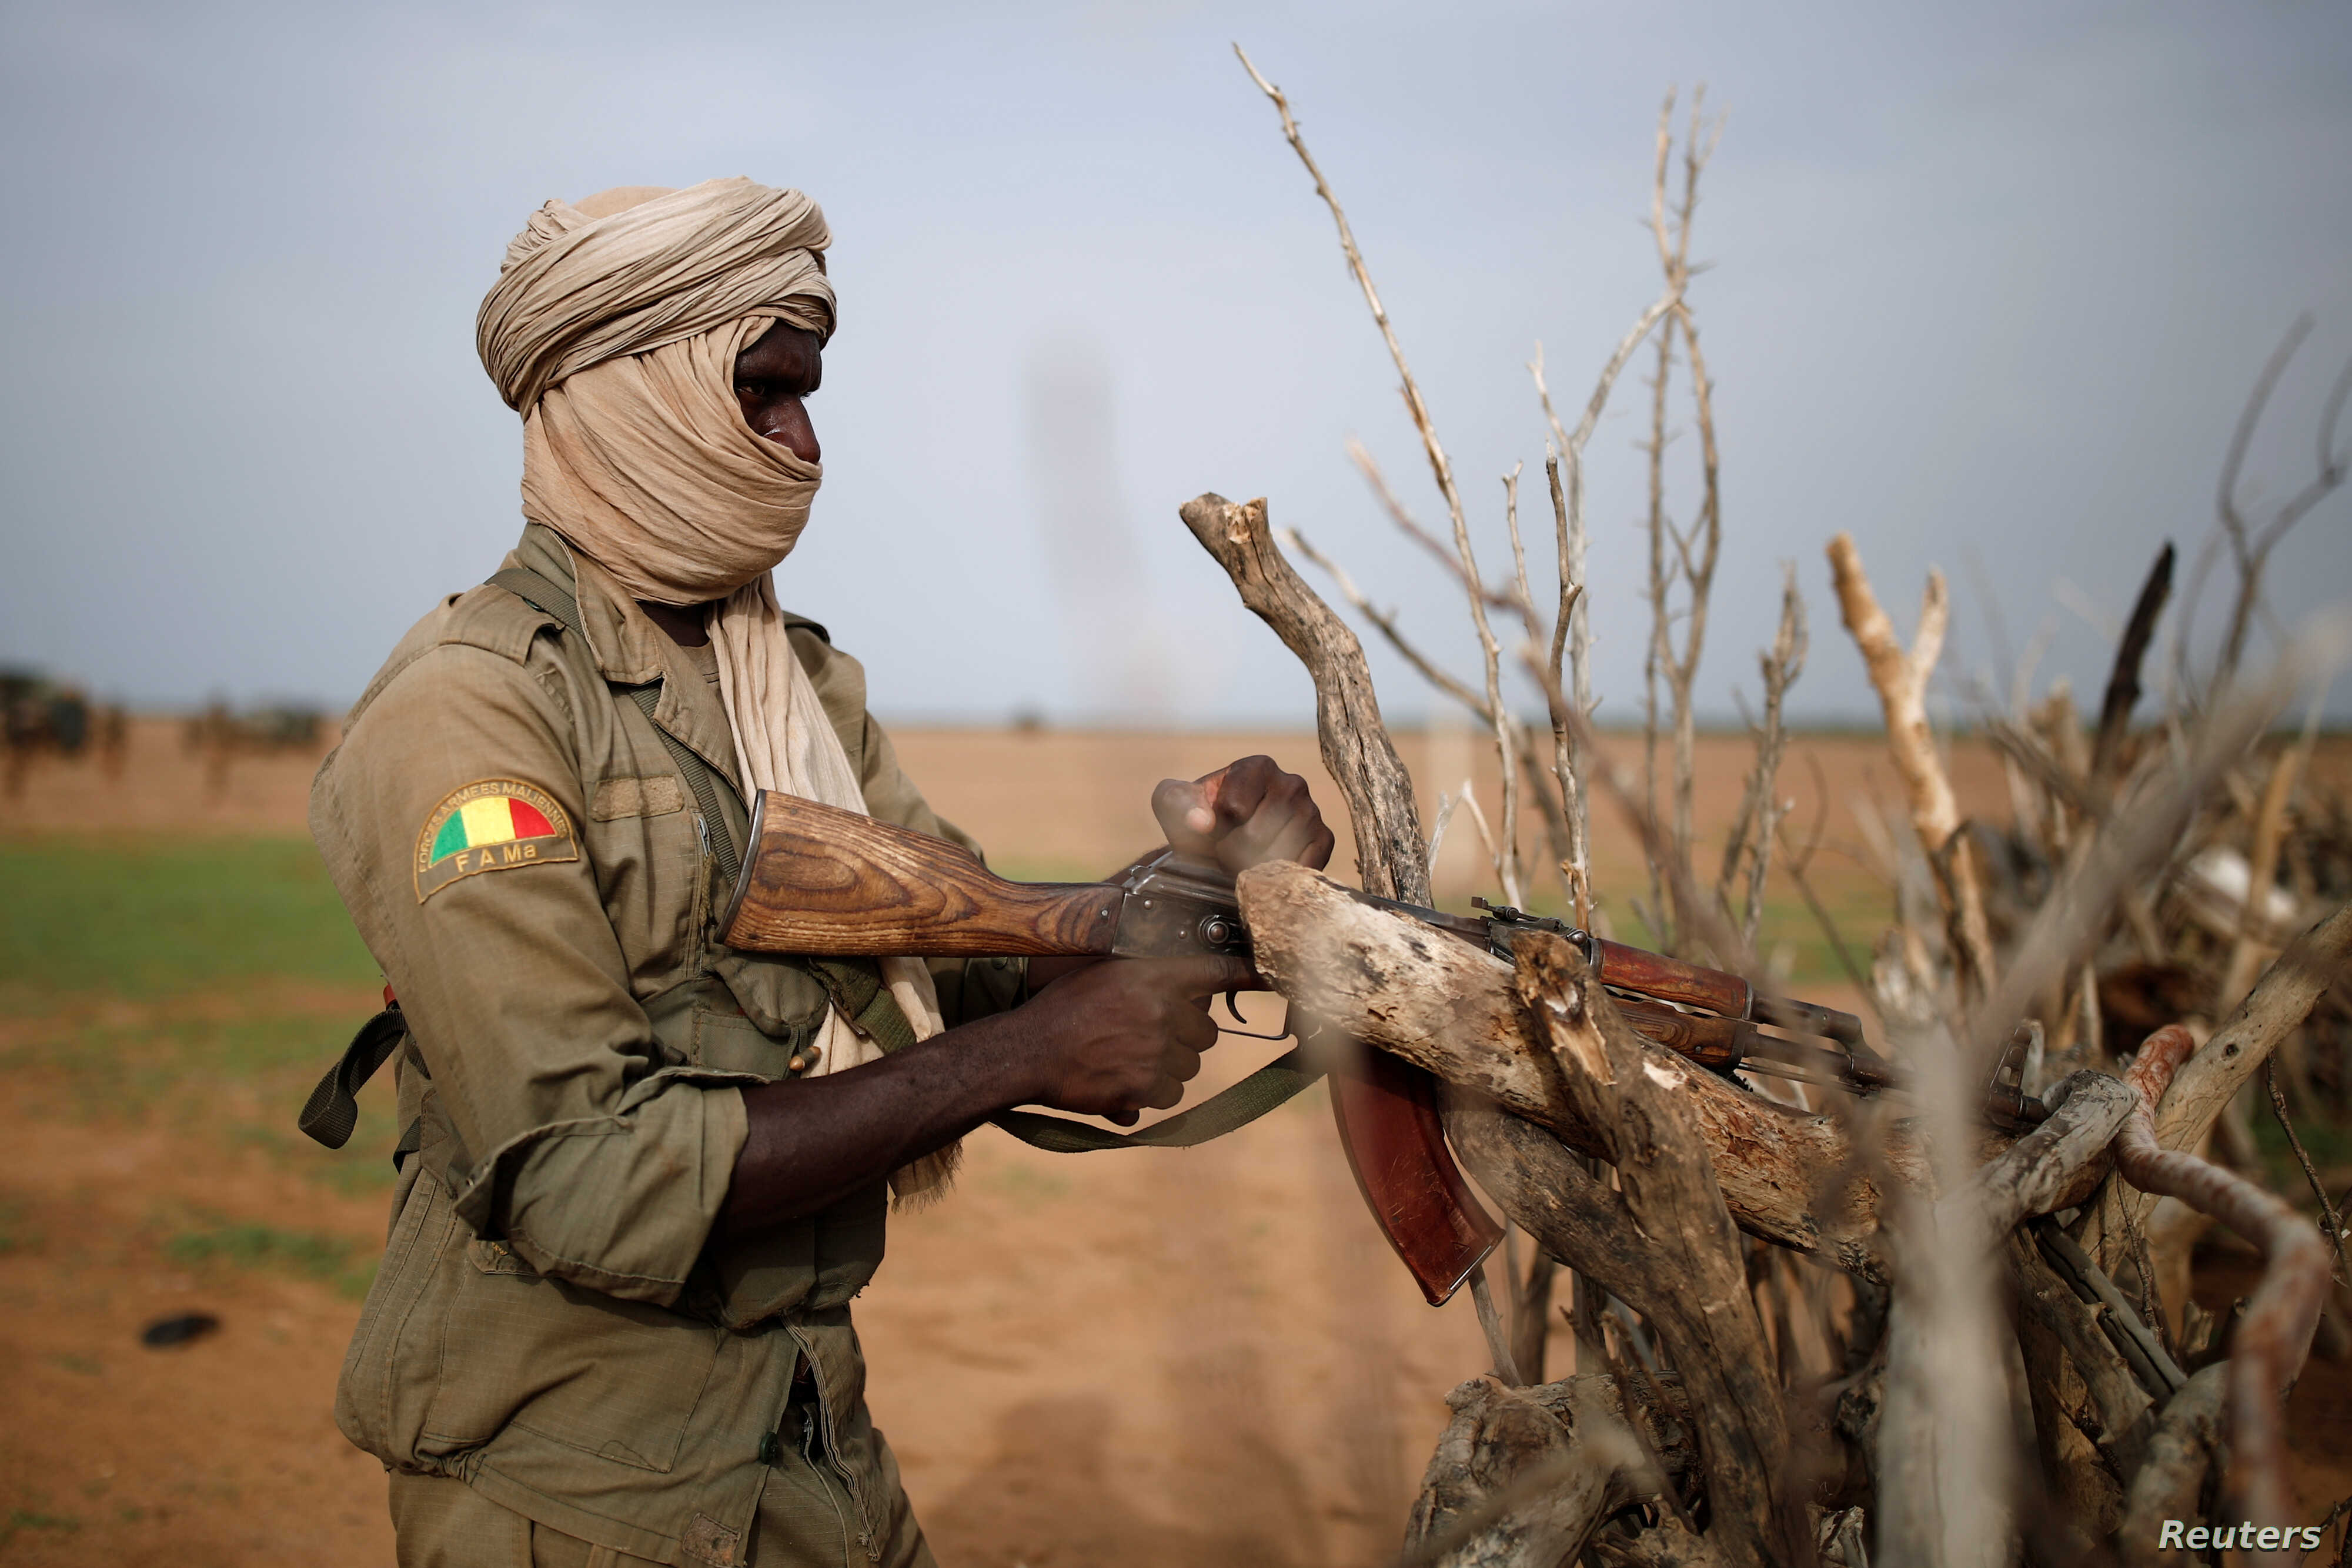 Mali 25 Soldiers Killed In Attacks By Suspected Jihadists Voice Of America English